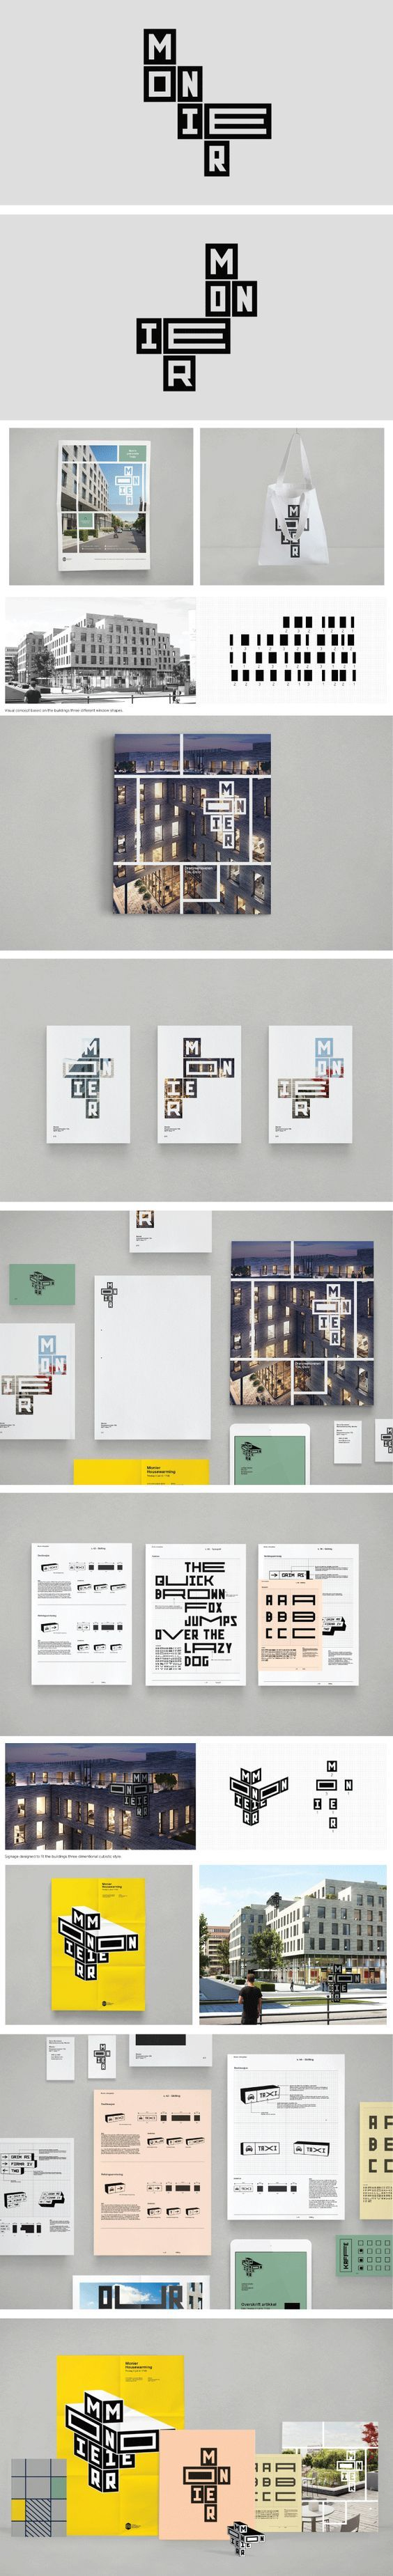 Bleed – Visual identity for Monier, an office building in Oslo: